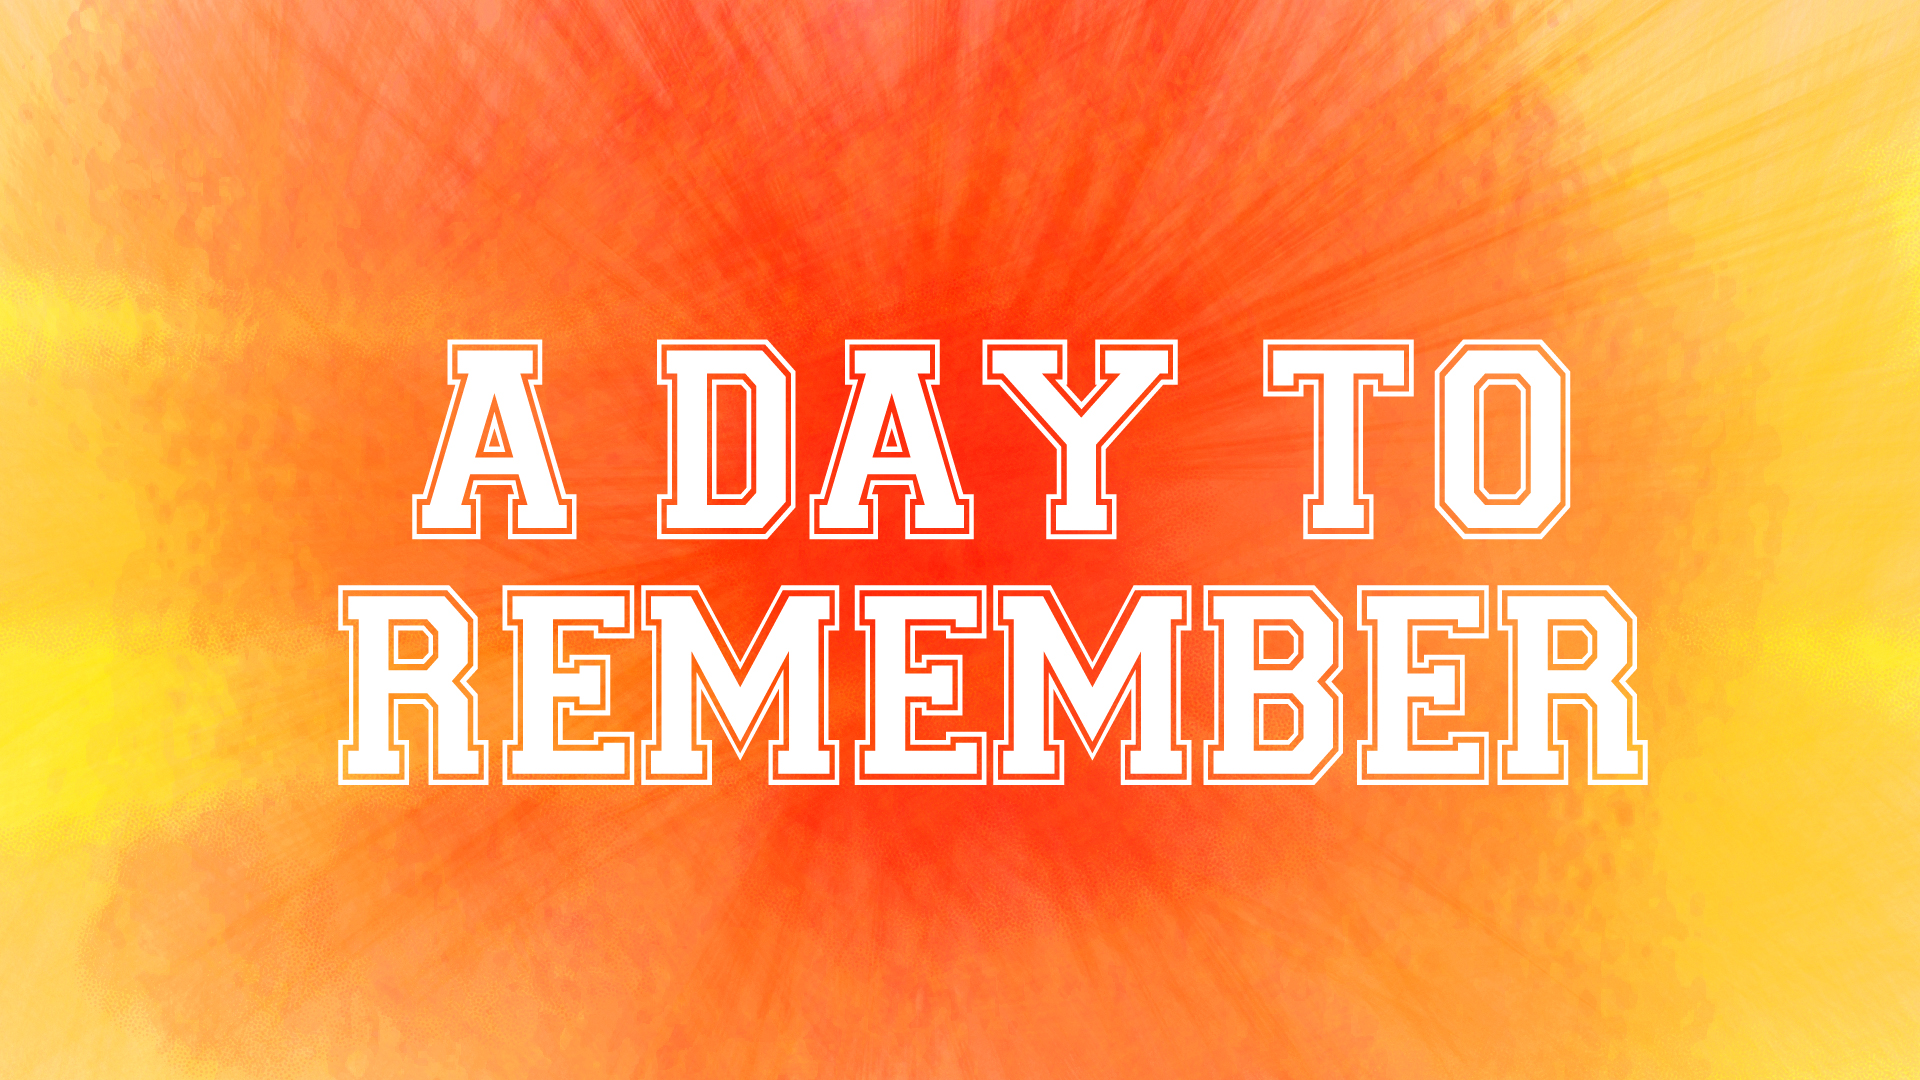 A Day To Remember Backgrounds HD Wallpapers Backgrounds 1920x1080